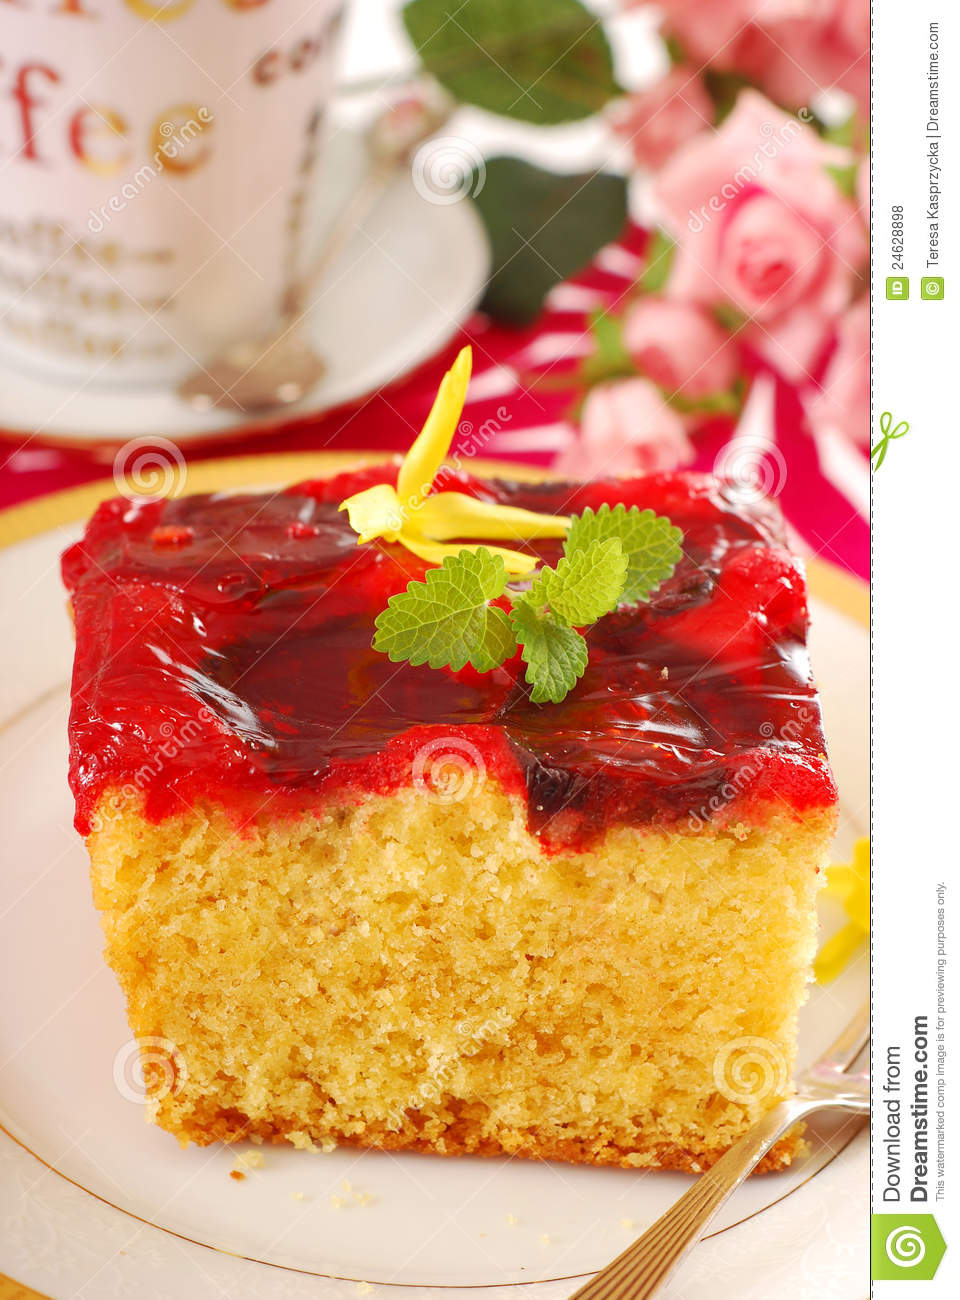 Cake With Fruit Yogurt : Yogurt Cake With Fruit Jelly Royalty Free Stock Photos ...